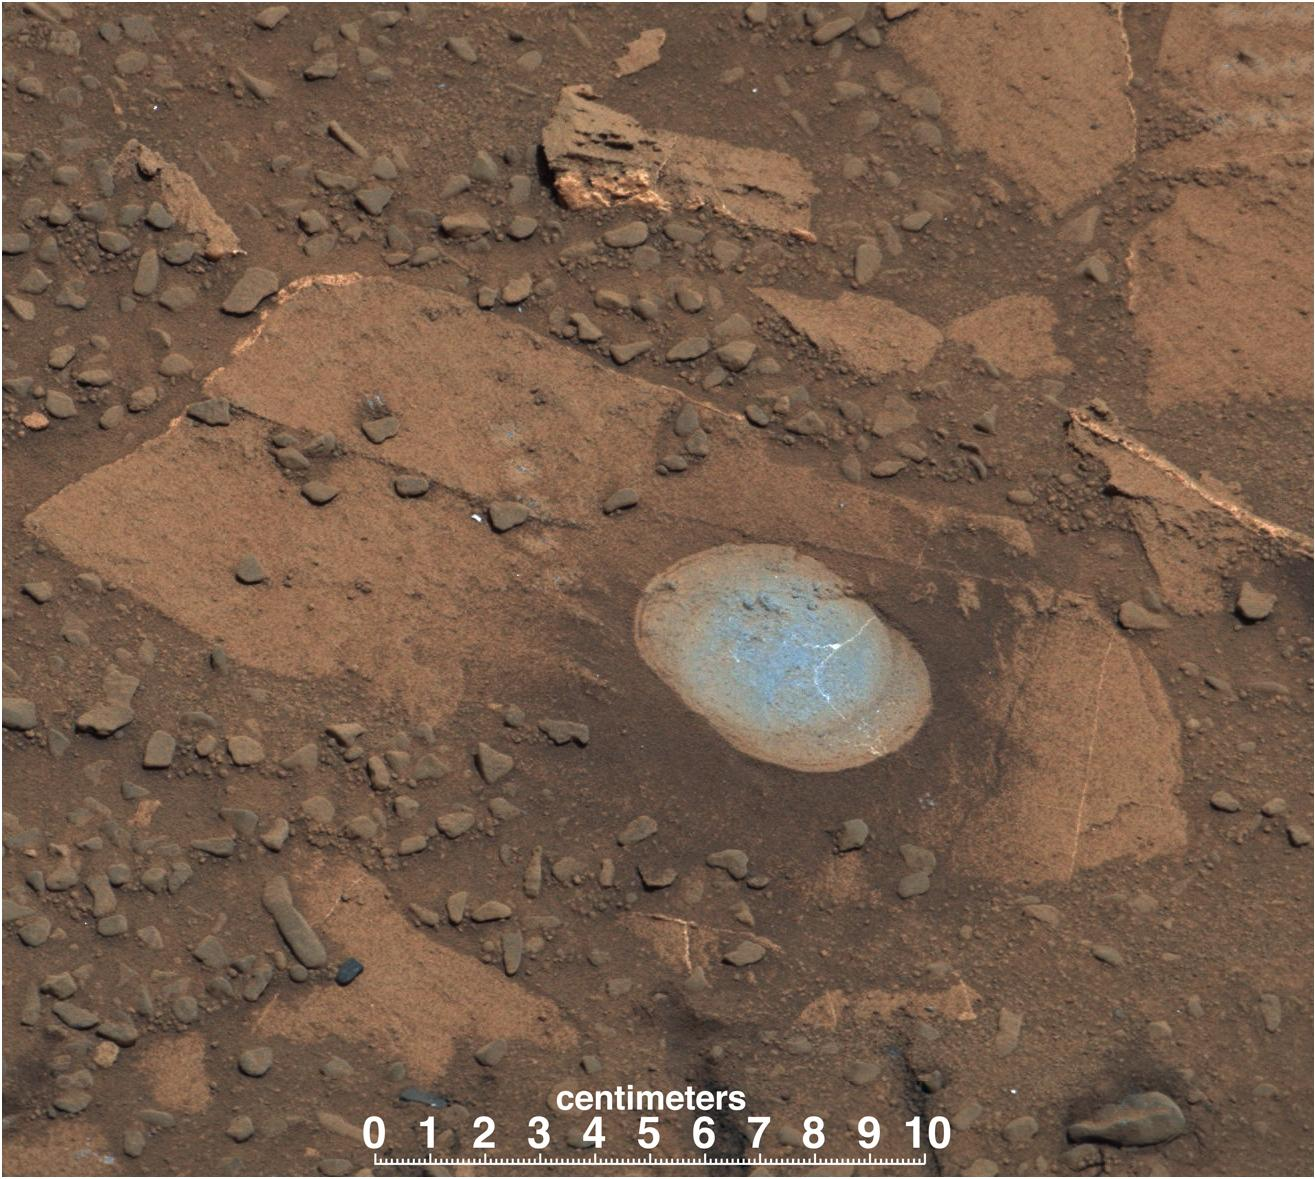 nasa life on mars rumor - photo #21